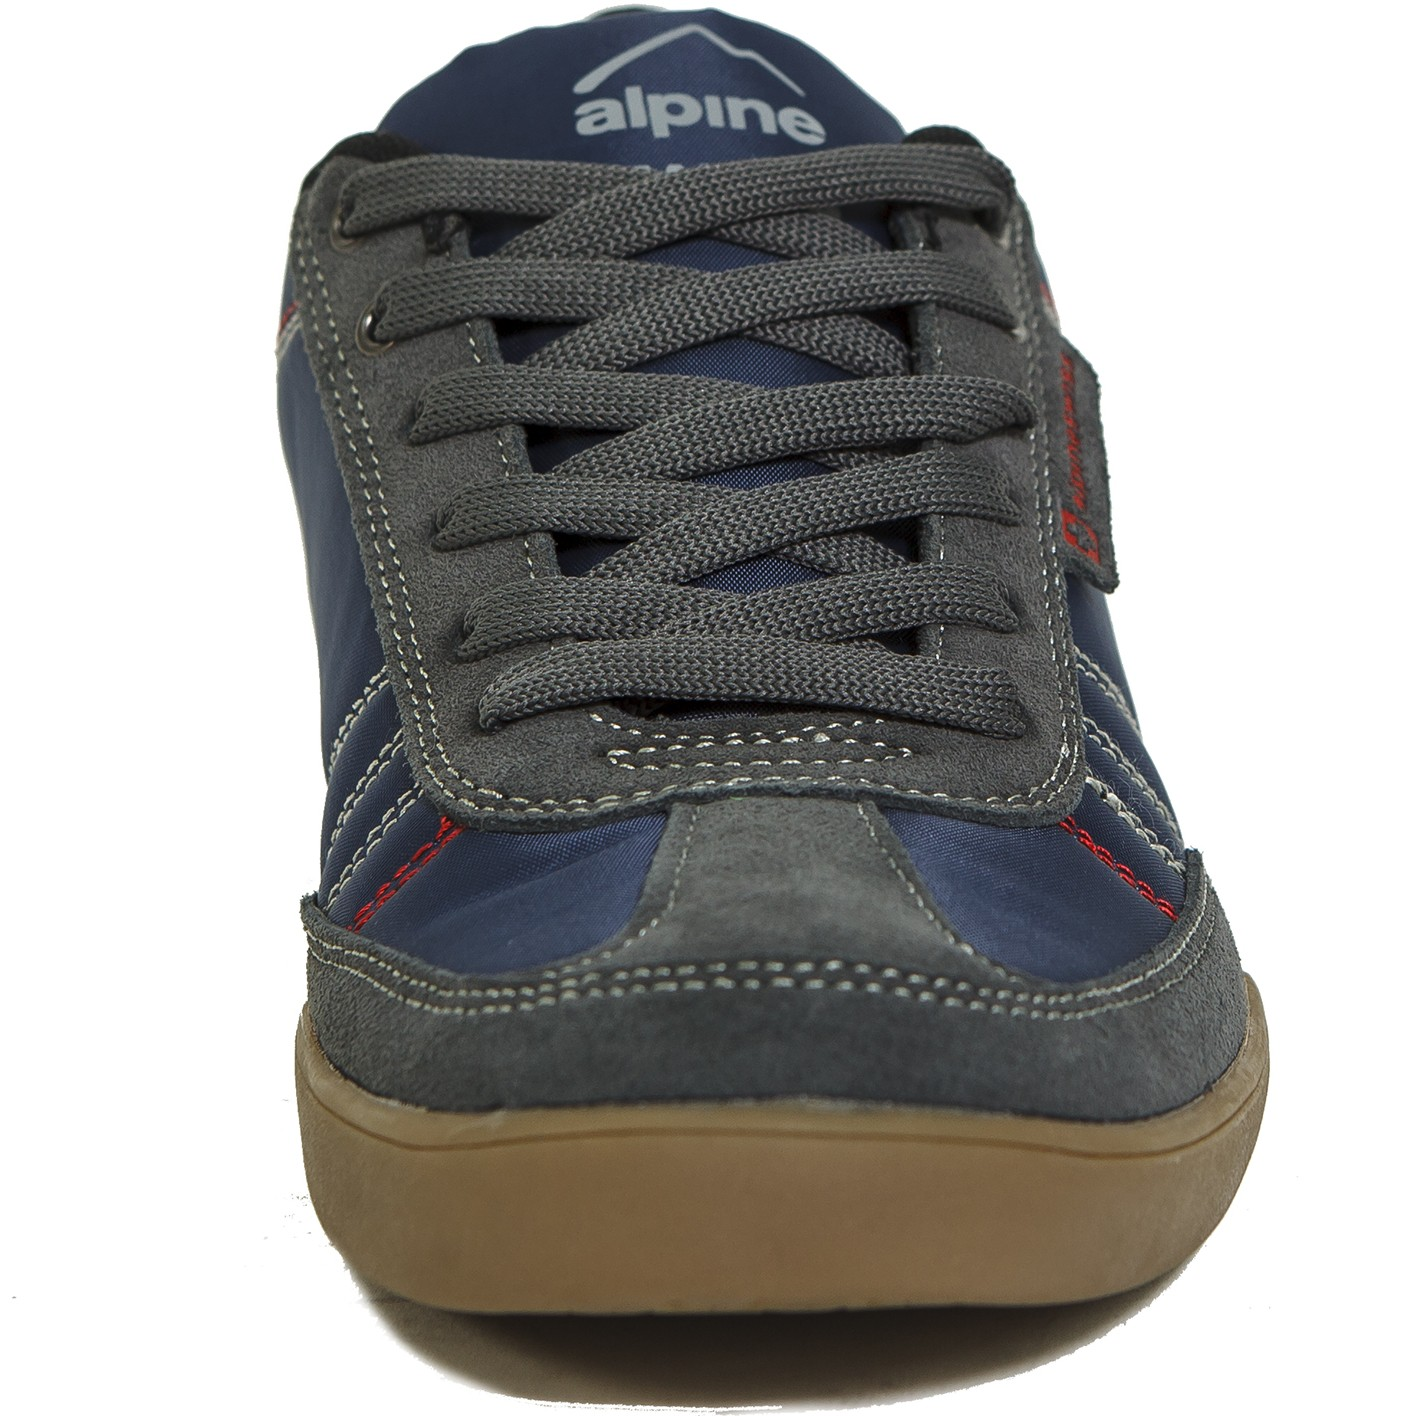 Alpine-Swiss-Marco-Mens-Casual-Shoes-Sporty-Lace-up-Jean-amp-Sneaker-Fused-Hybrid